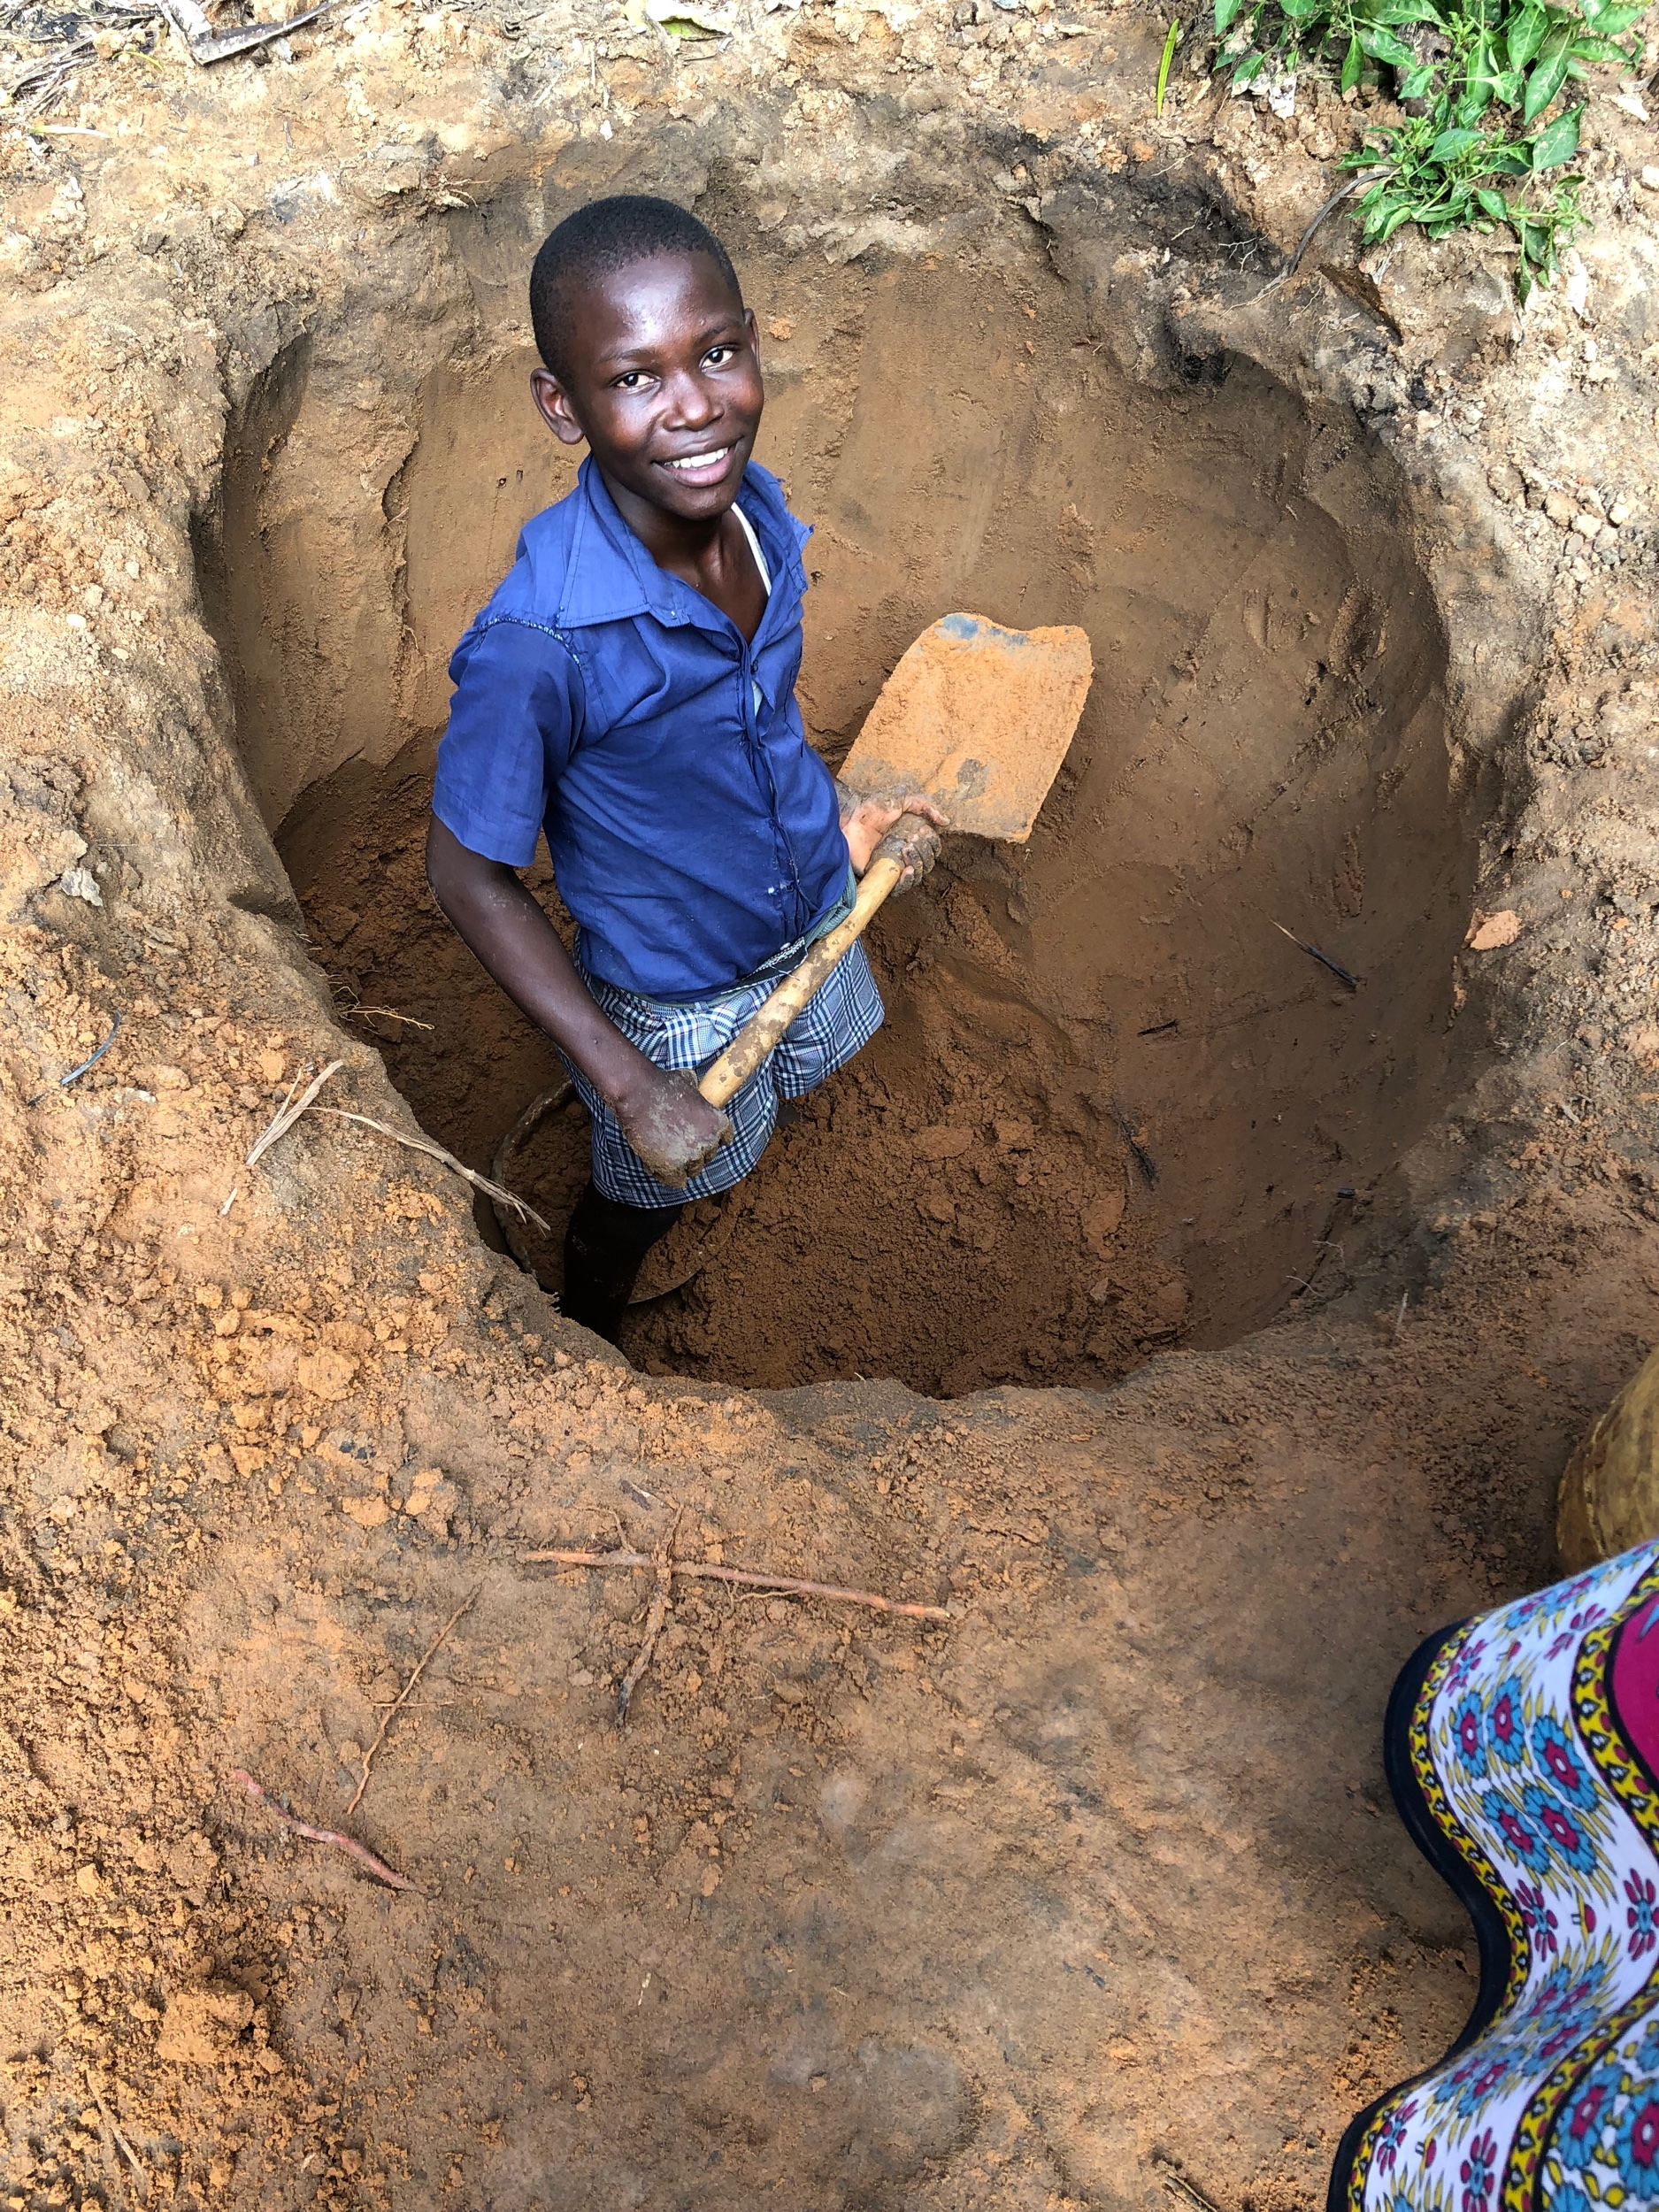 The hole left behind after the dirt was hauled away to be turned into mud. They will use the hole as a compost pile or pit latrine.